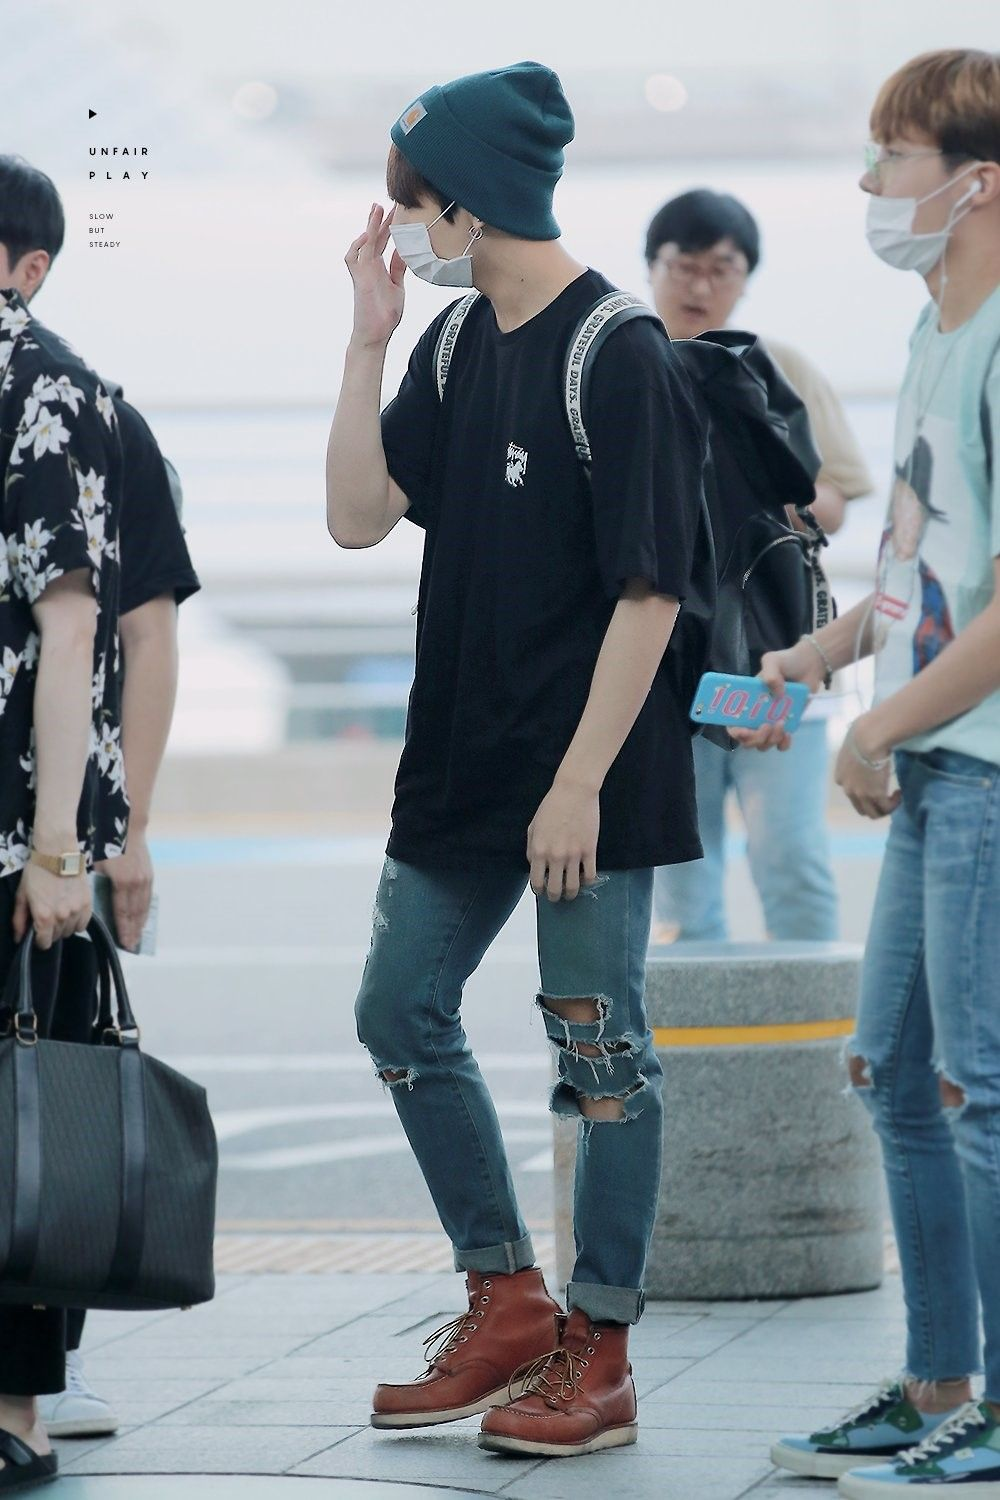 Jeon Jungkook - Airport Fashion Bts BTS Jungkook | If Only I Could Dress A Guy. | Pinterest ...